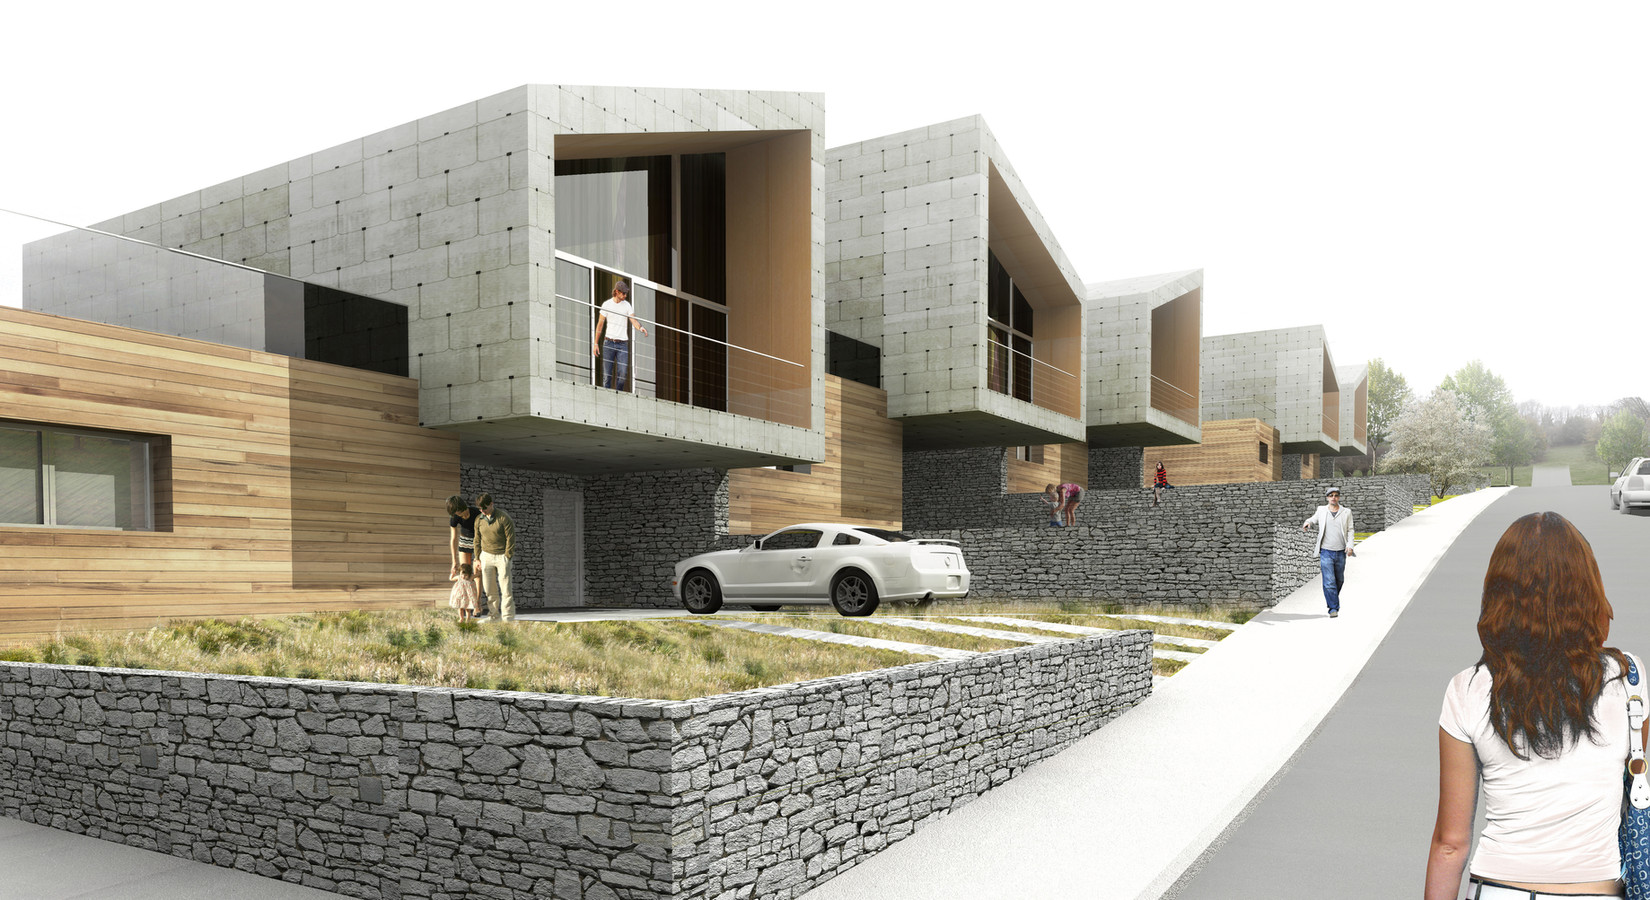 Frutoso-architecte-concours hpa.jpg